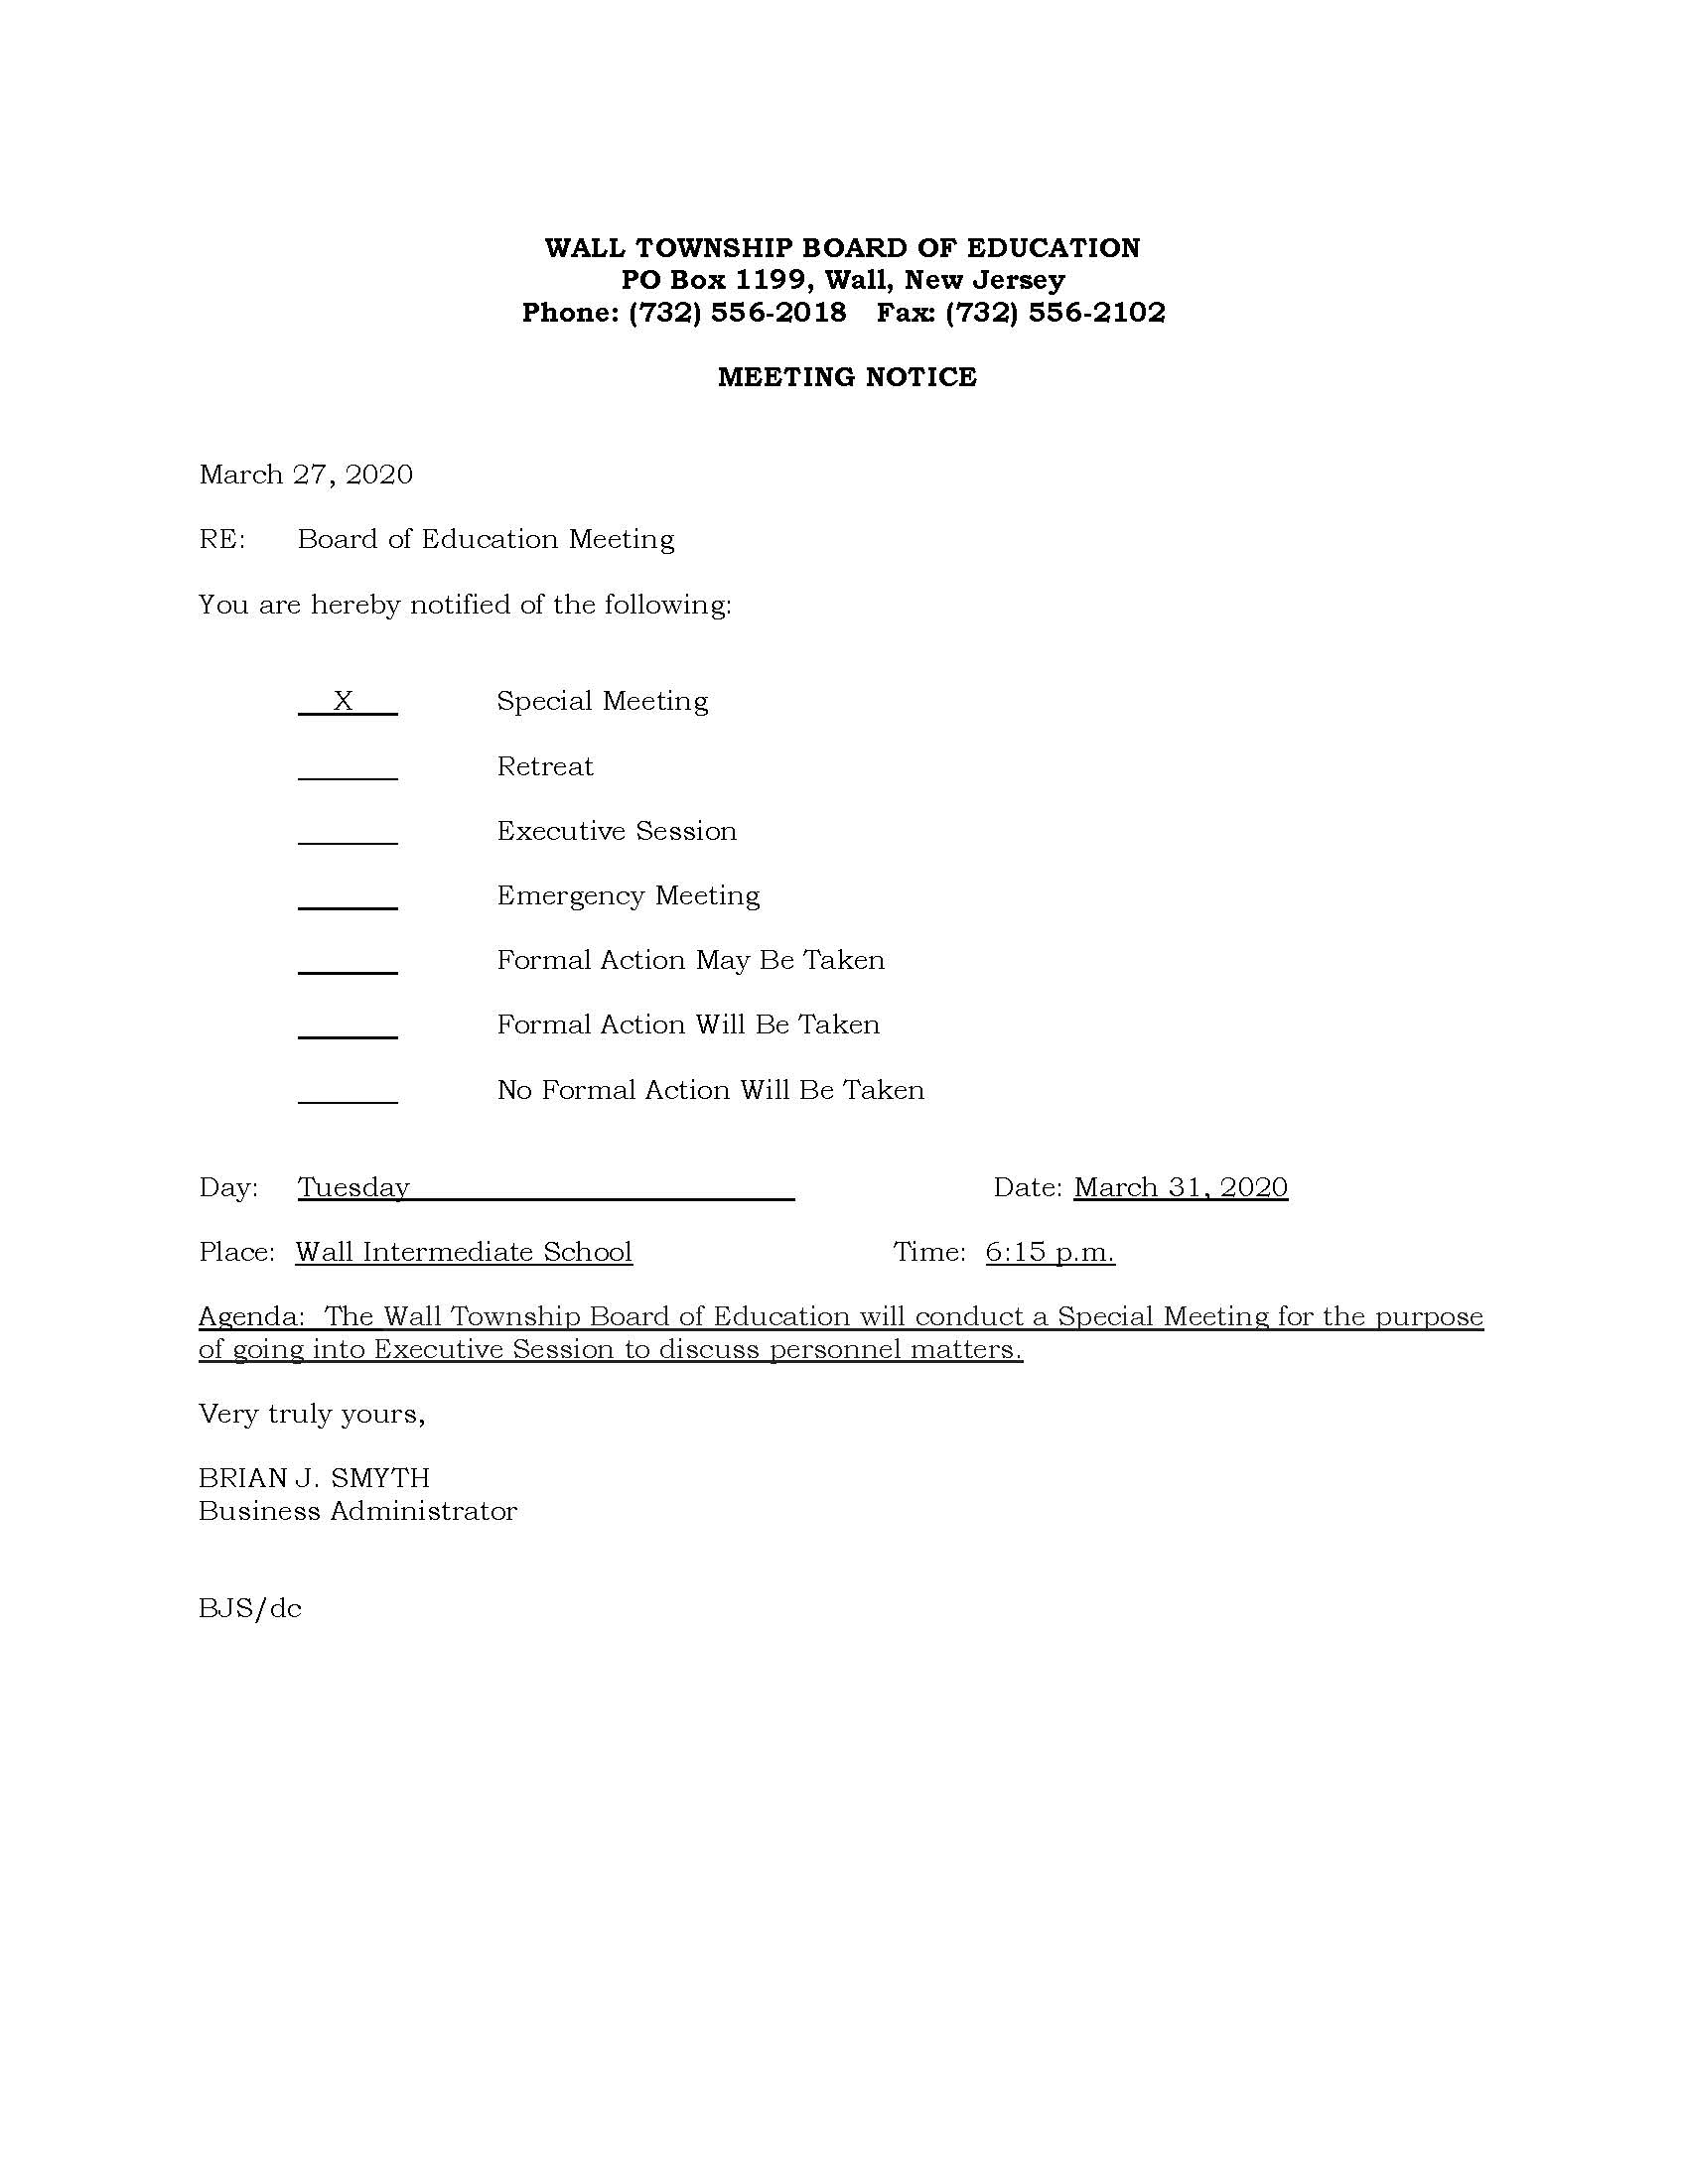 Wall Twp. BOE Meeting Notice 3.31.20_